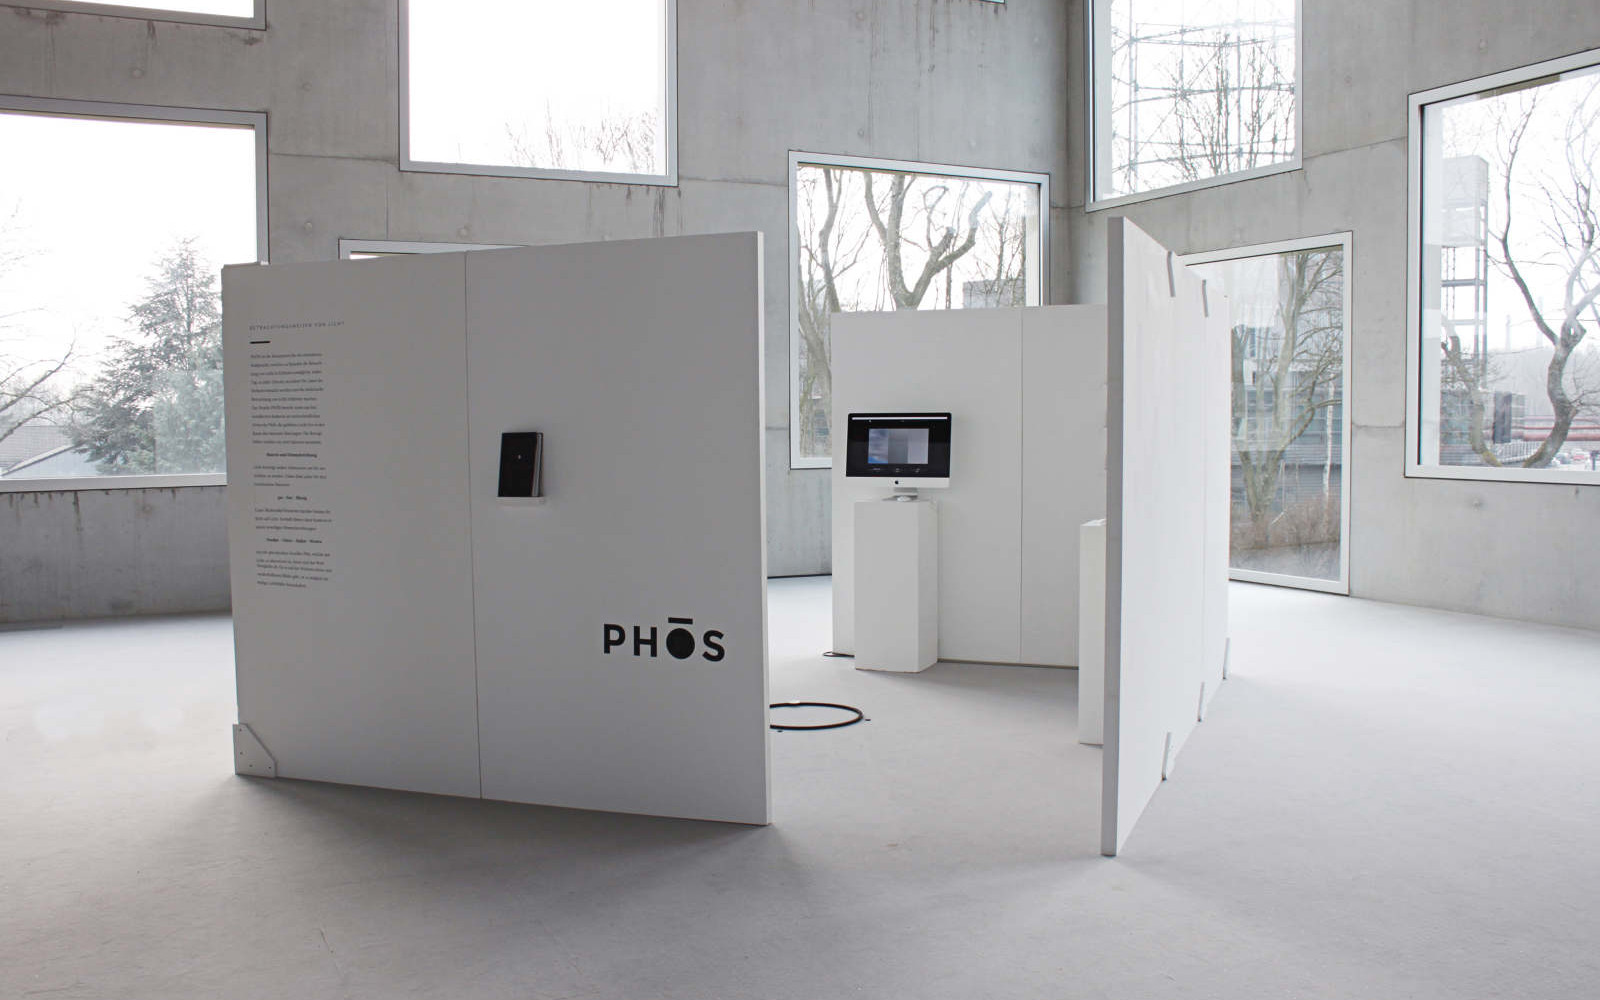 Phōs – An interactive web-project which deals with the complexity of light, room and time